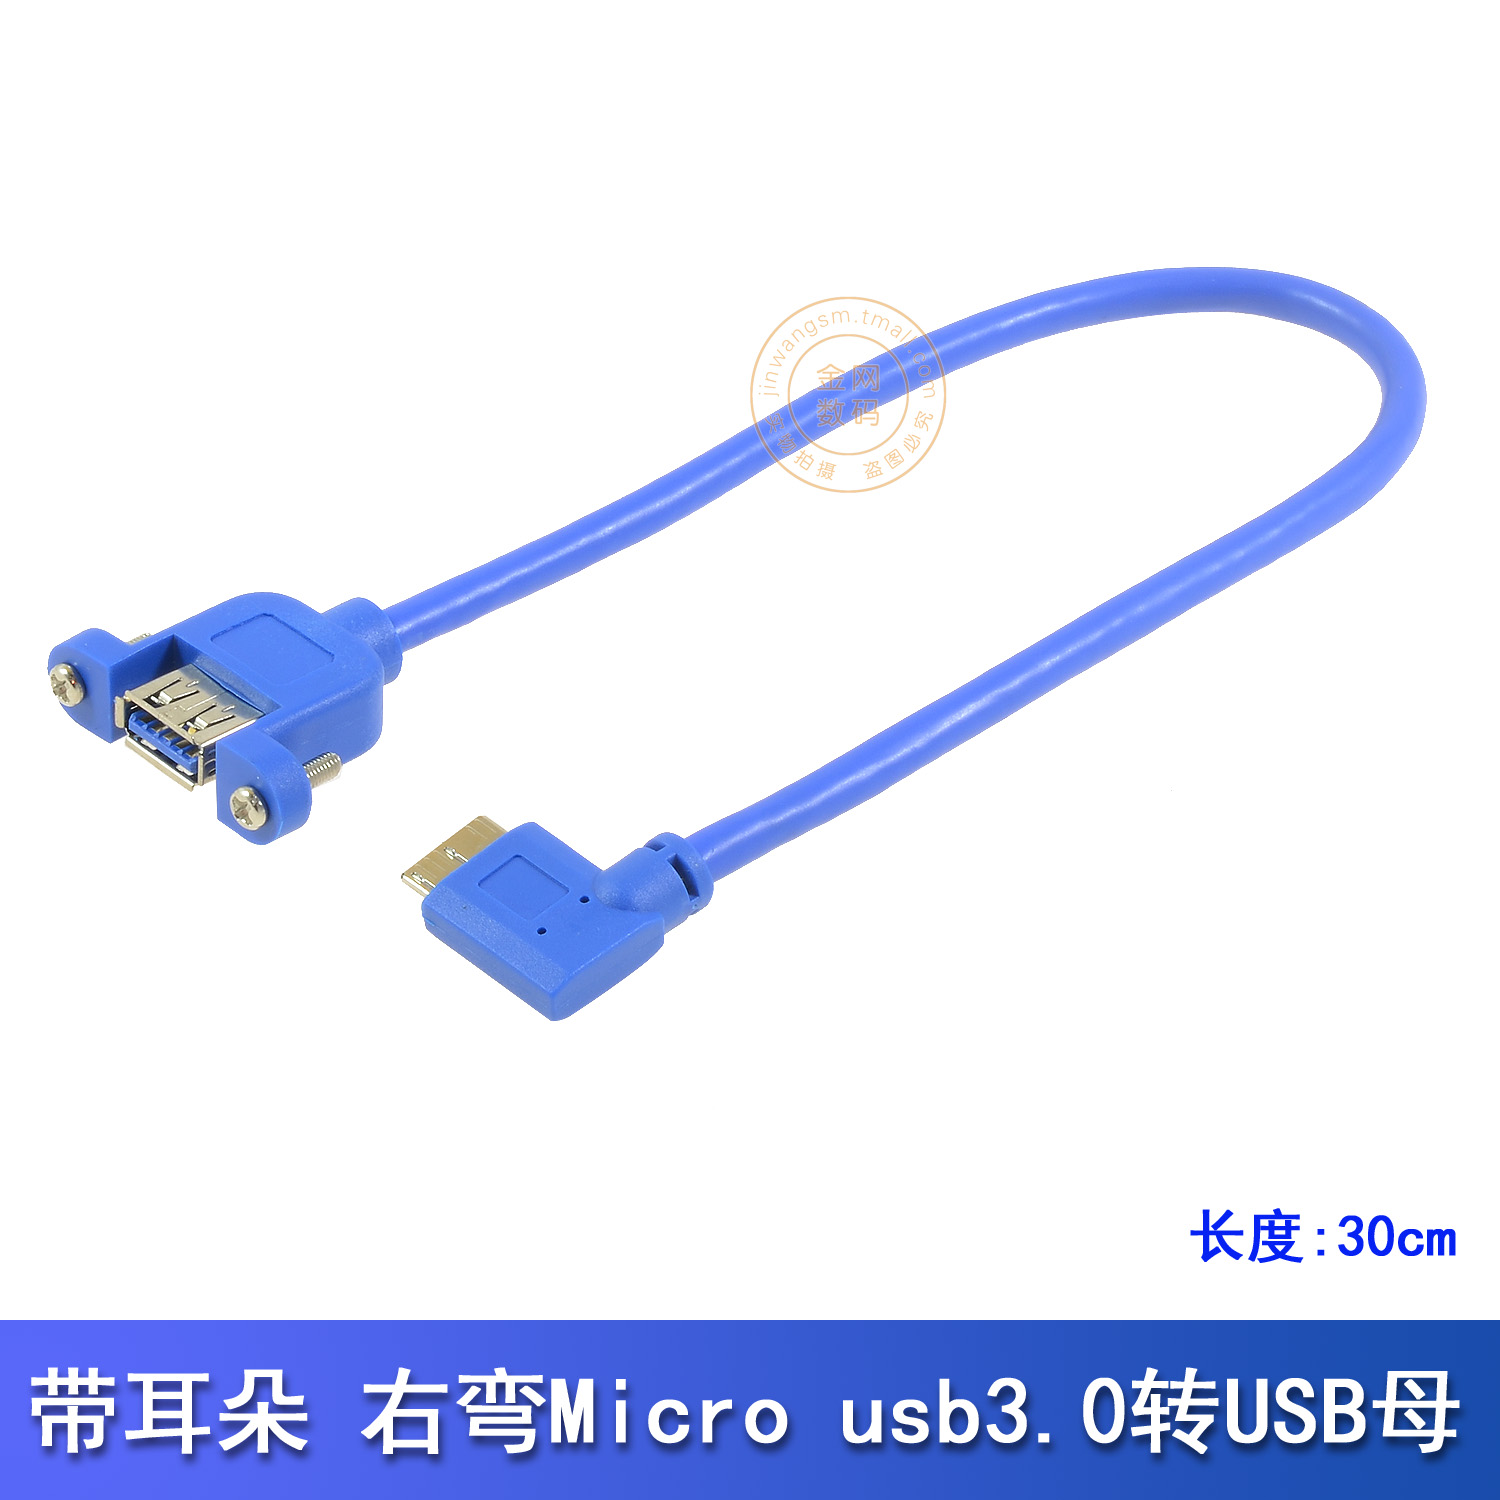 Left elbow micro usb3.0 to usb3.0 a female af turn micro3.0 data cable usb3.0 cable right